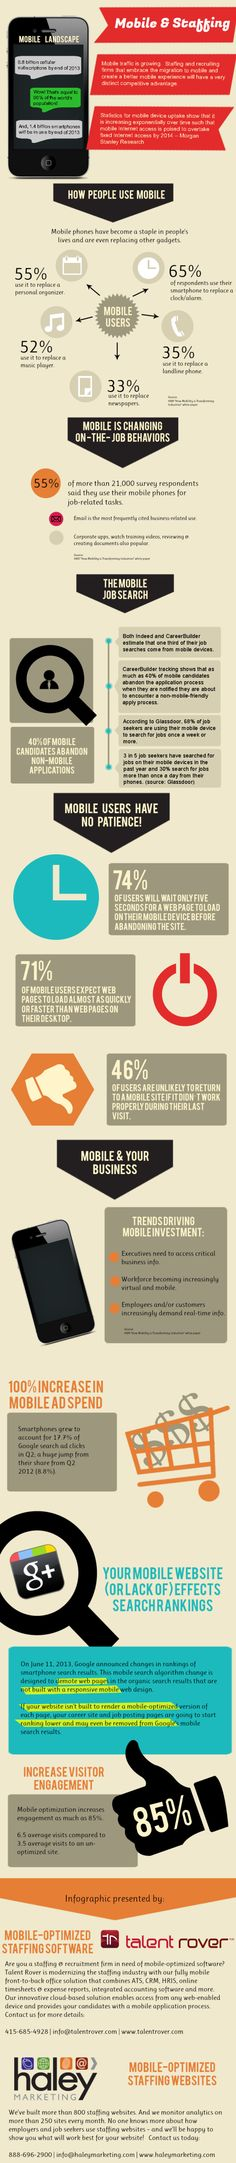 INFOGRAPHIC: Mobile Trends in Recruiting and Staffing - Mobile traffic is increasing exponentially and is on pace to surpass fixed Internet access by the end of 2014.  This infographic highlights some very interesting statistics on mobile and it's influence on recruiting staffing.